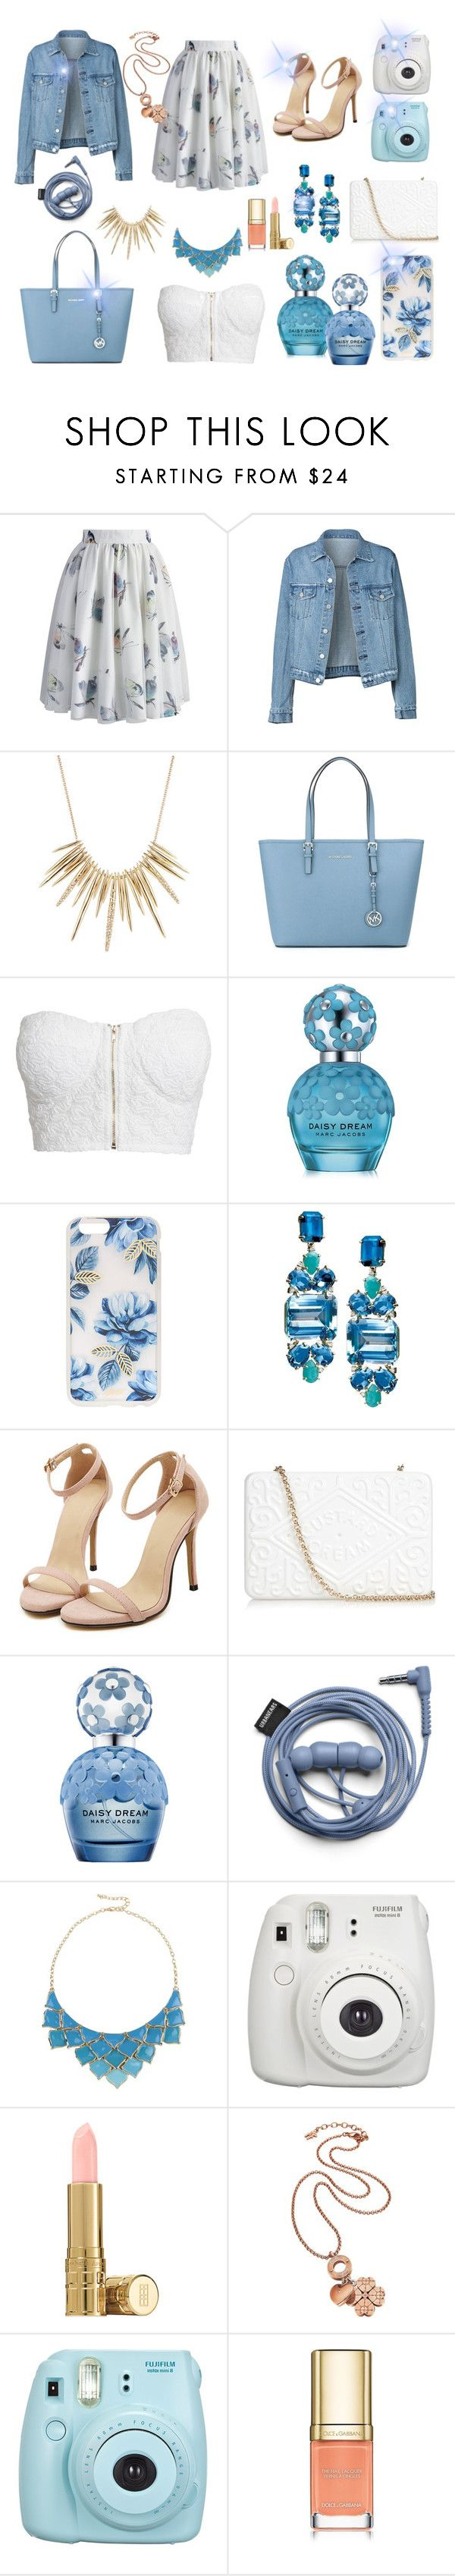 """It's spring time!"" by medusart on Polyvore featuring Chicwish, Alexis Bittar, MICHAEL Michael Kors, NLY Trend, Marc Jacobs, Sonix, Anya Hindmarch, George J. Love, Elizabeth Arden and Folli Follie"